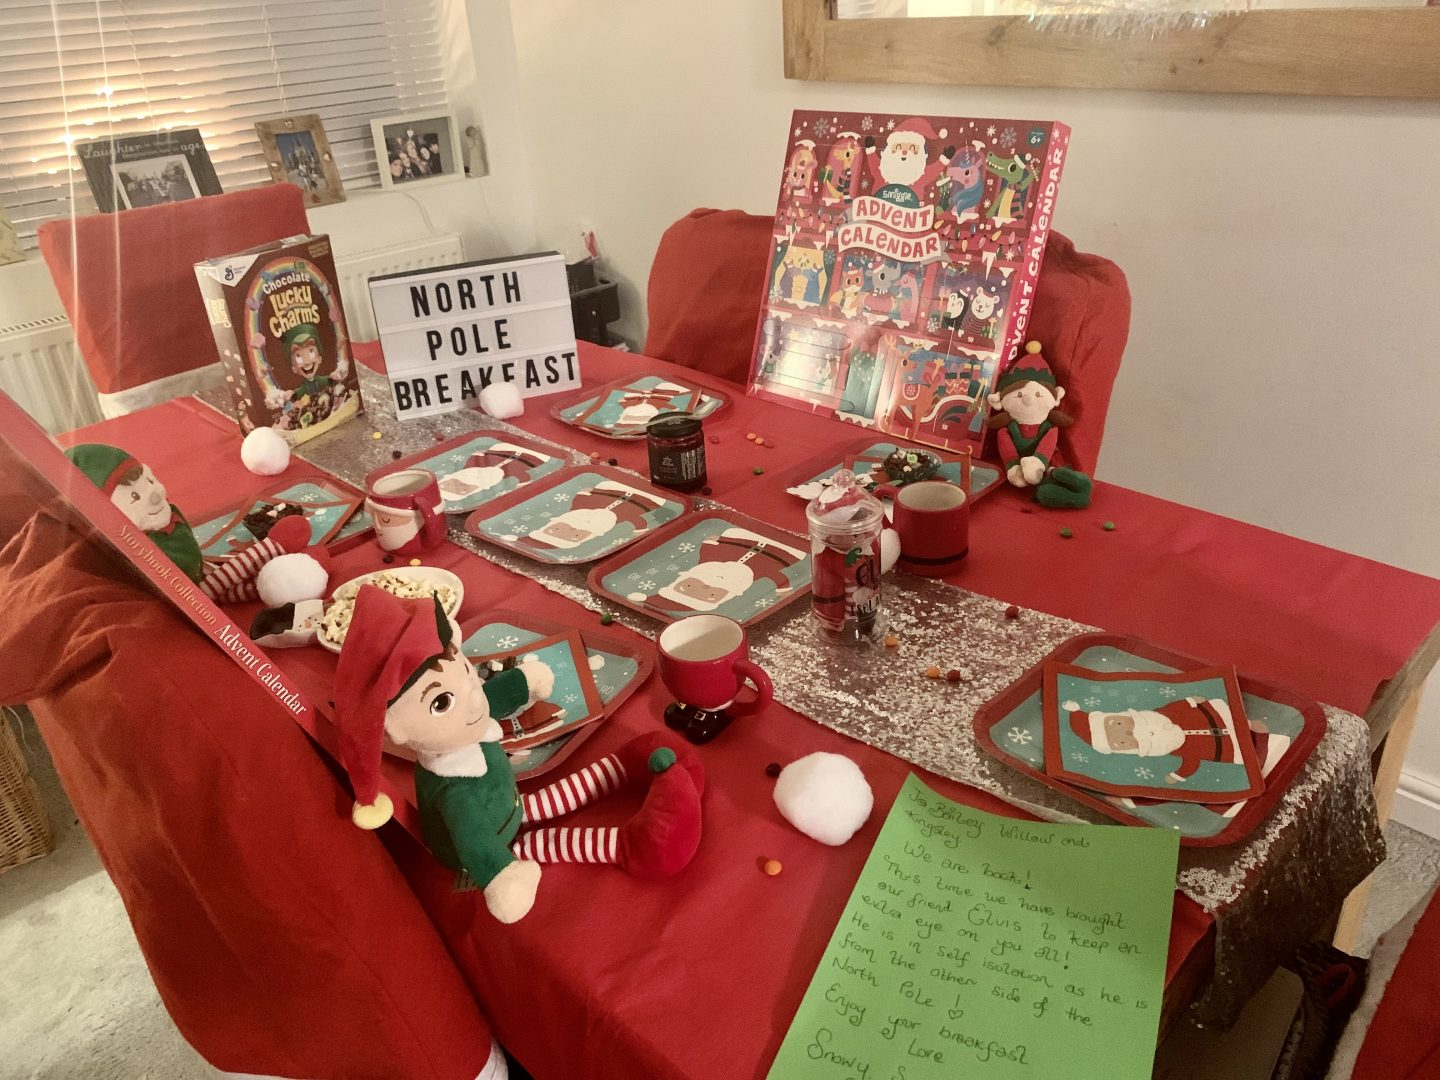 North Pole Breakfast ideas festive table wear